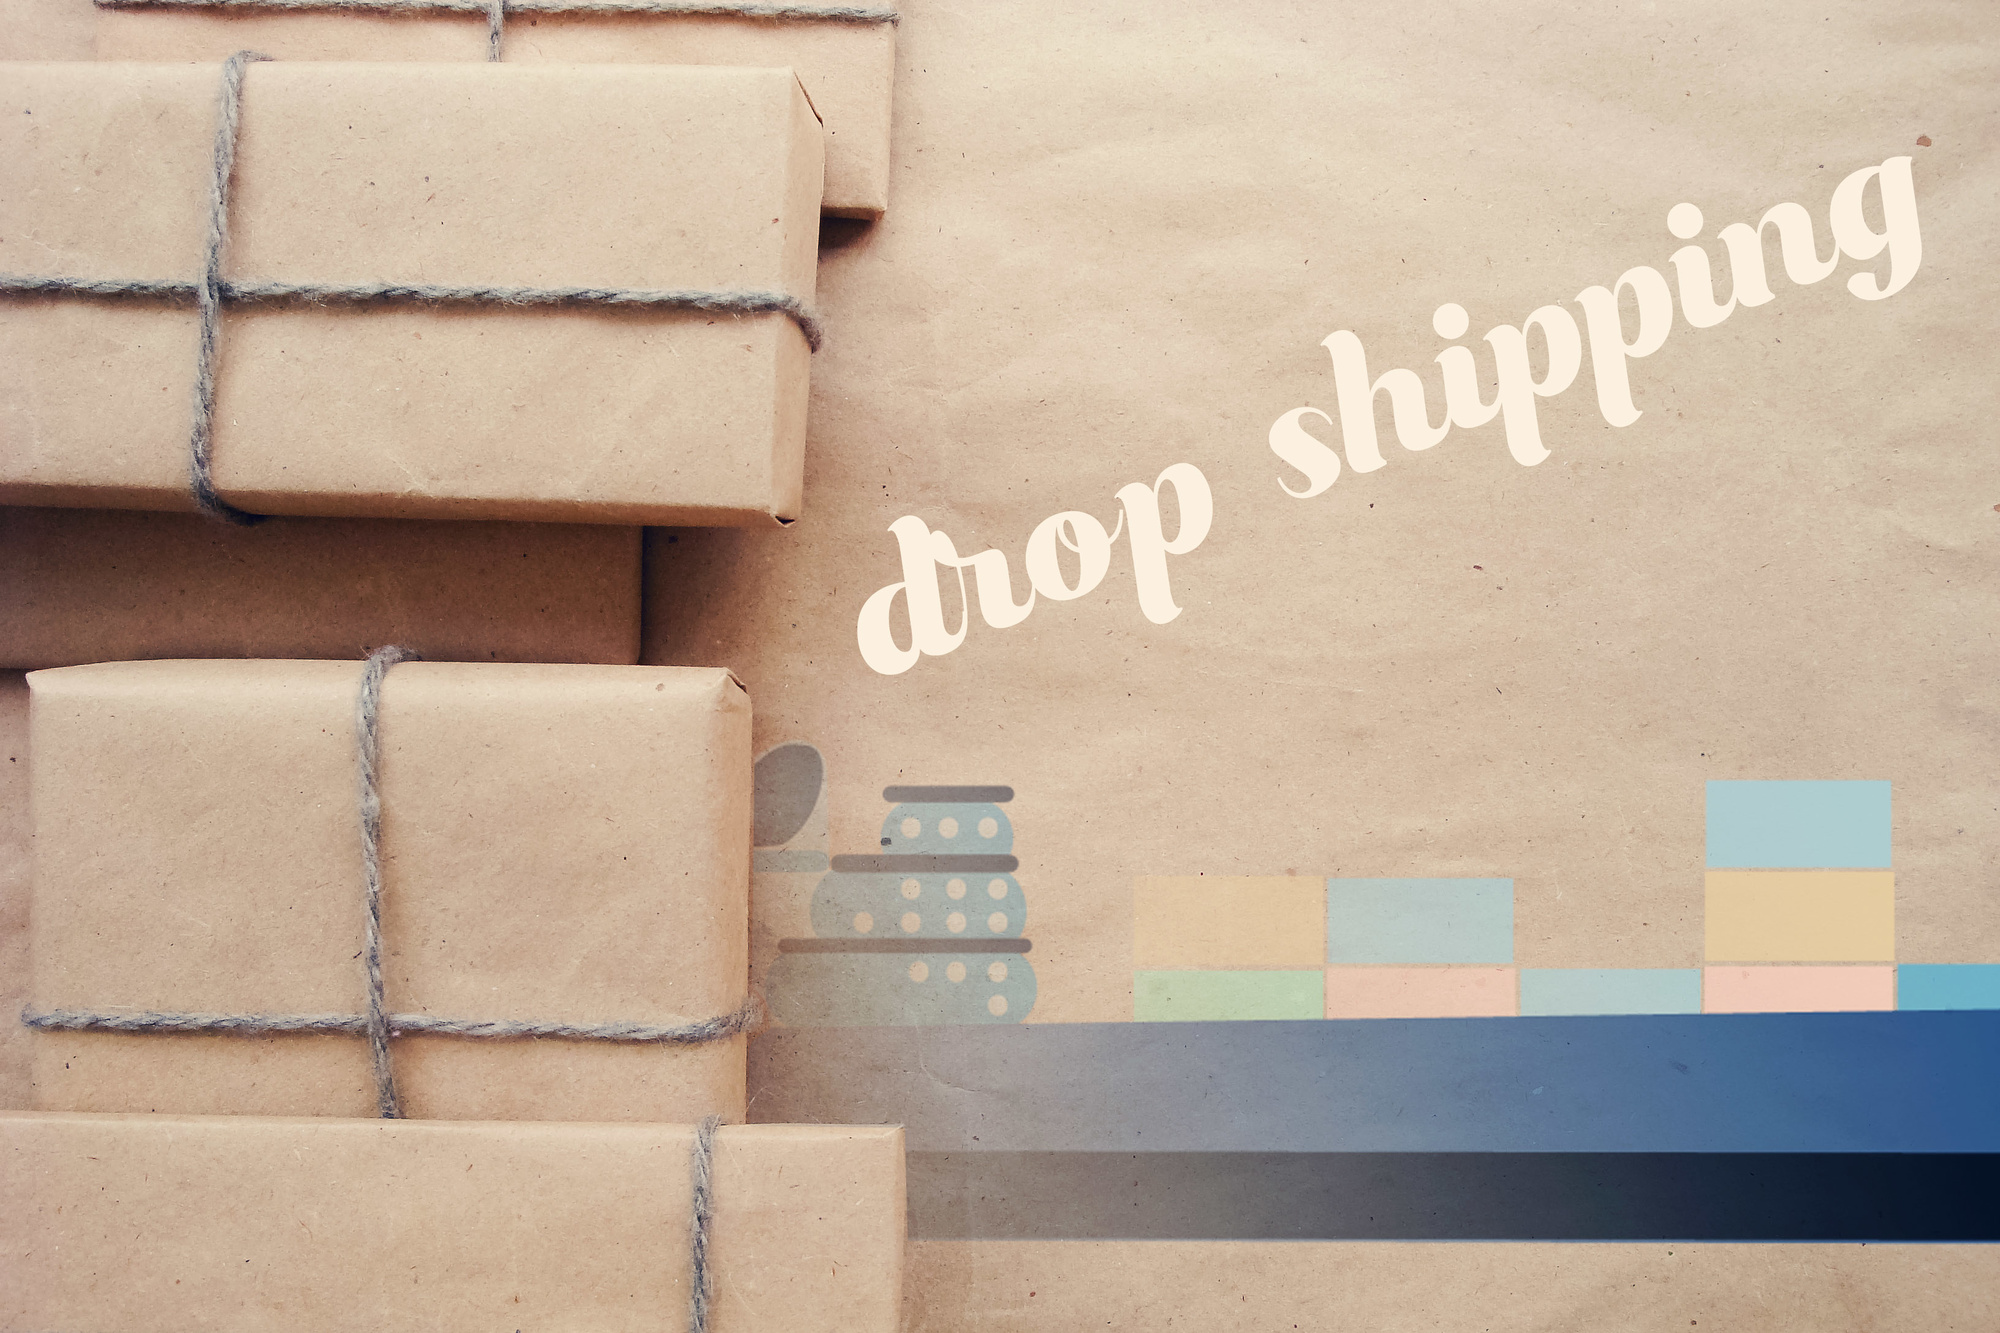 dropshipping products